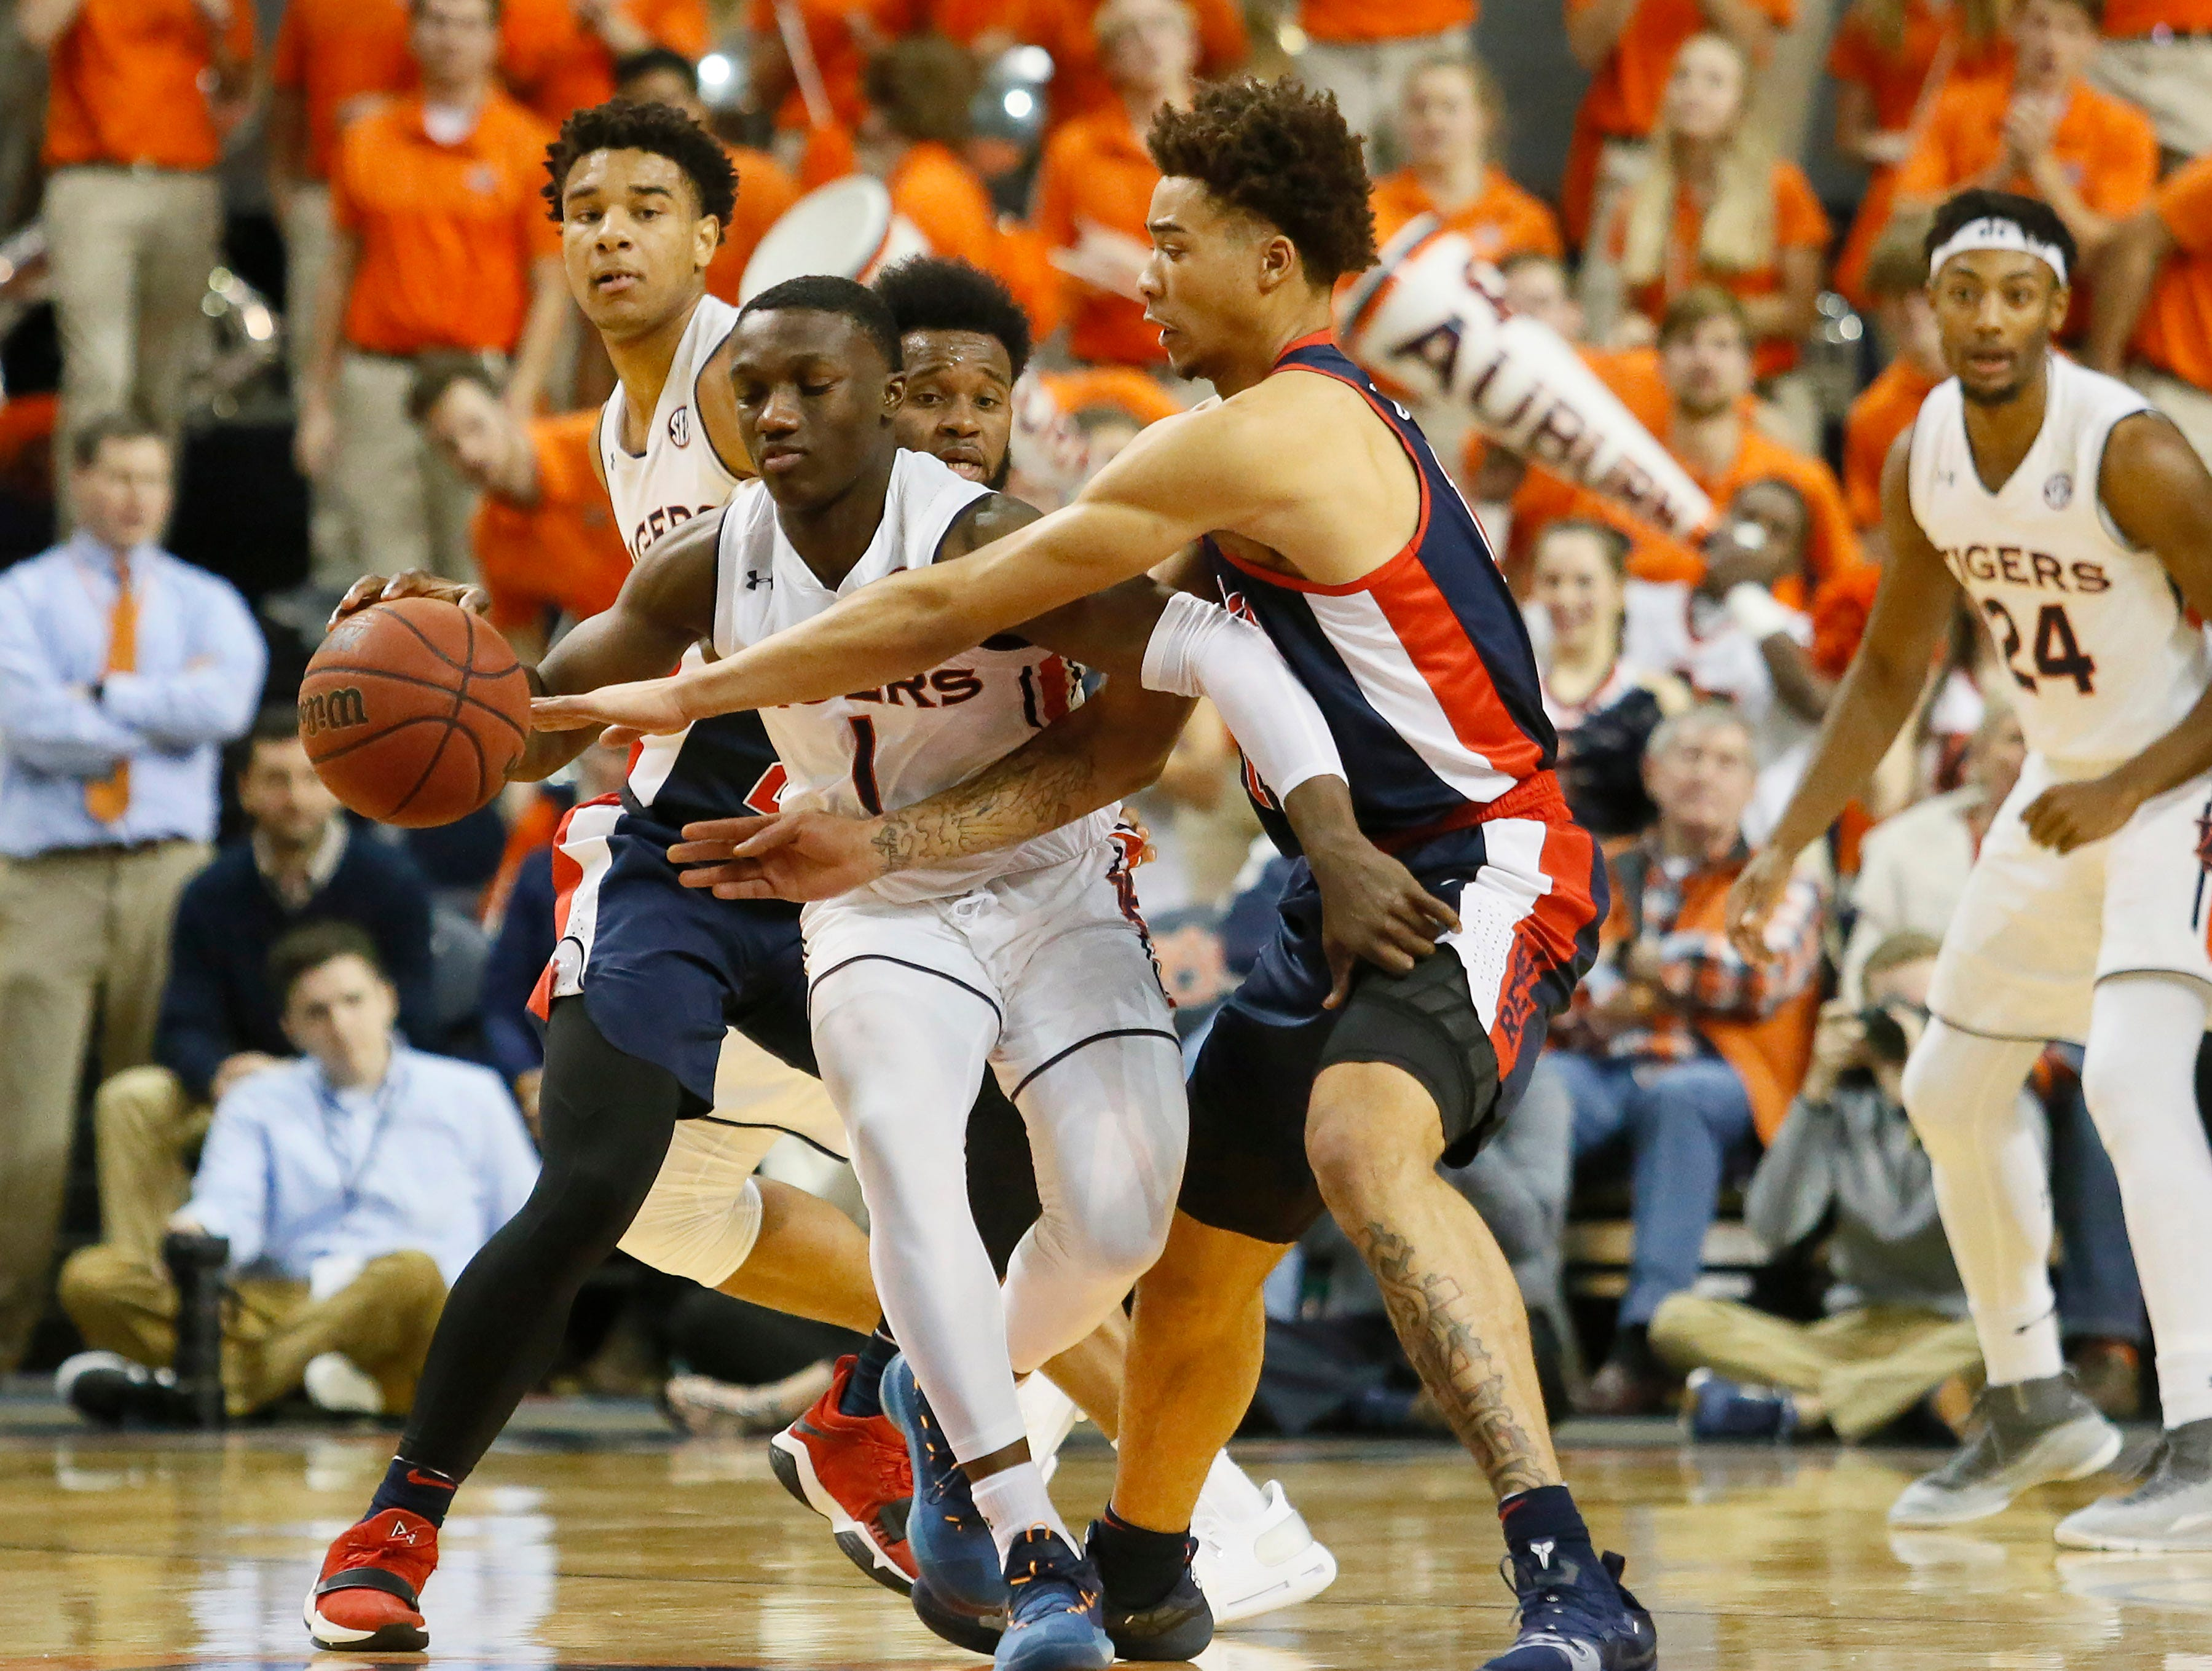 Feb 13, 2019; Auburn, AL, USA; Ole Miss Rebels forward KJ Buffen (14) tries to steal the ball from Auburn Tigers guard Jared Harper (1) during the first half at Auburn Arena. Mandatory Credit: John Reed-USA TODAY Sports